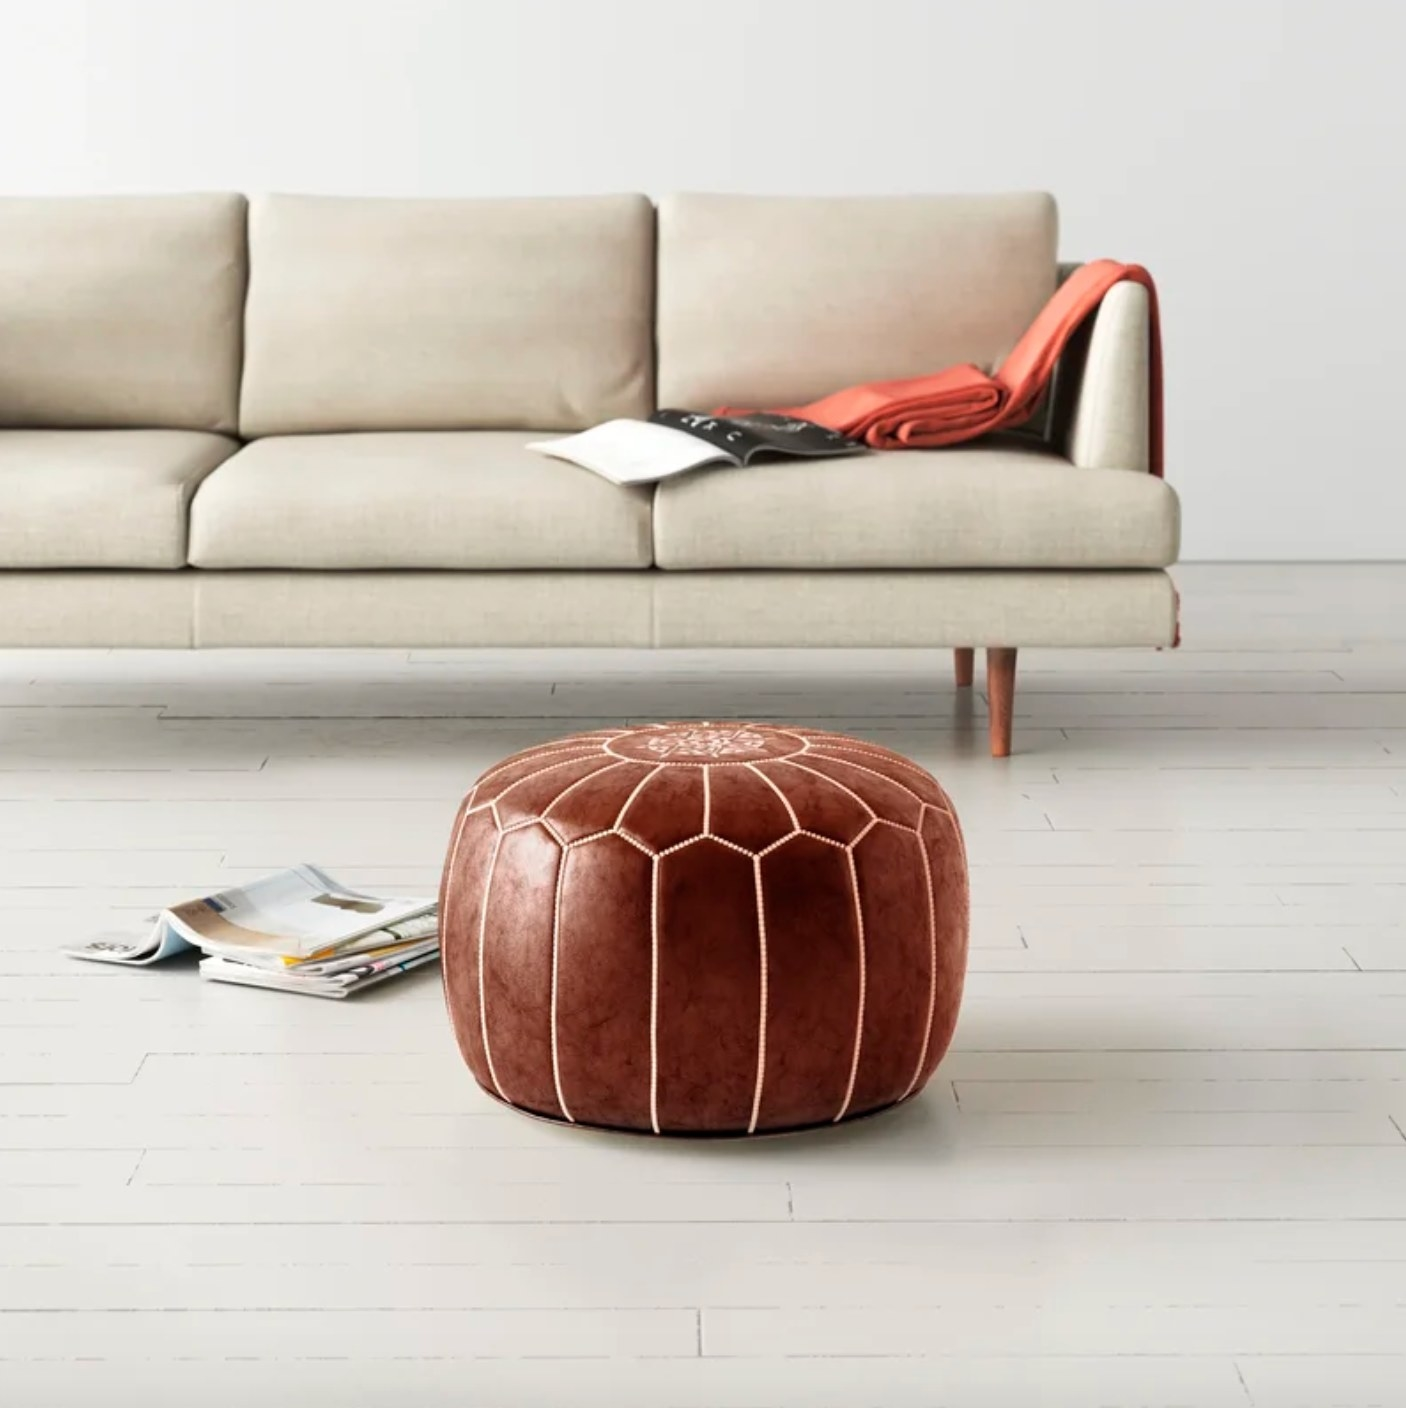 The leather pouf in brown